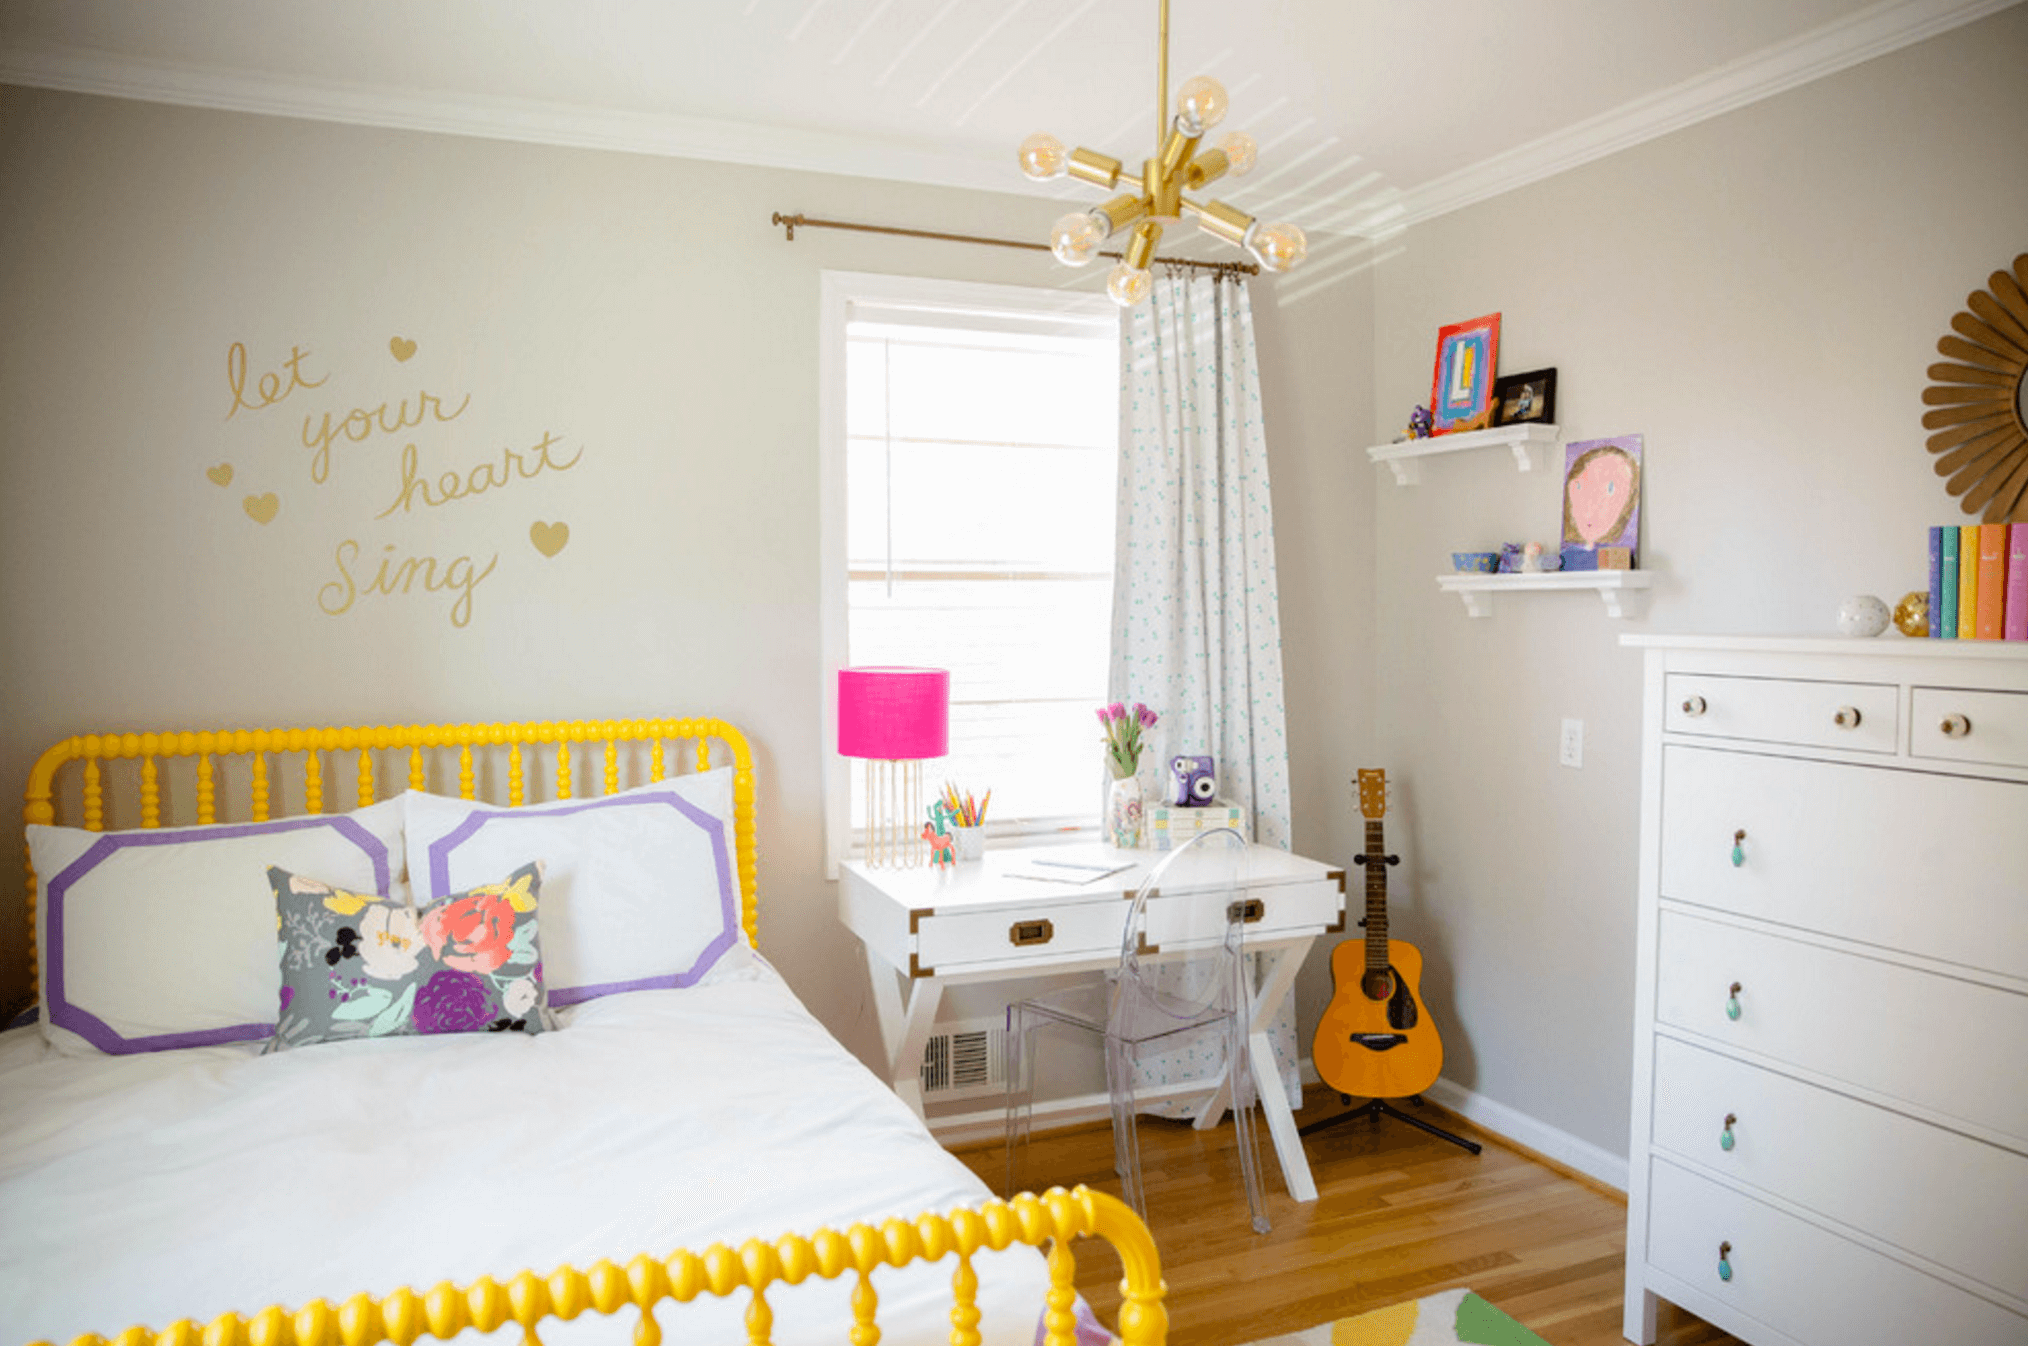 Ideas For Childrens Rooms 28 Ideas For Adding Color To A Kids Room Freshome